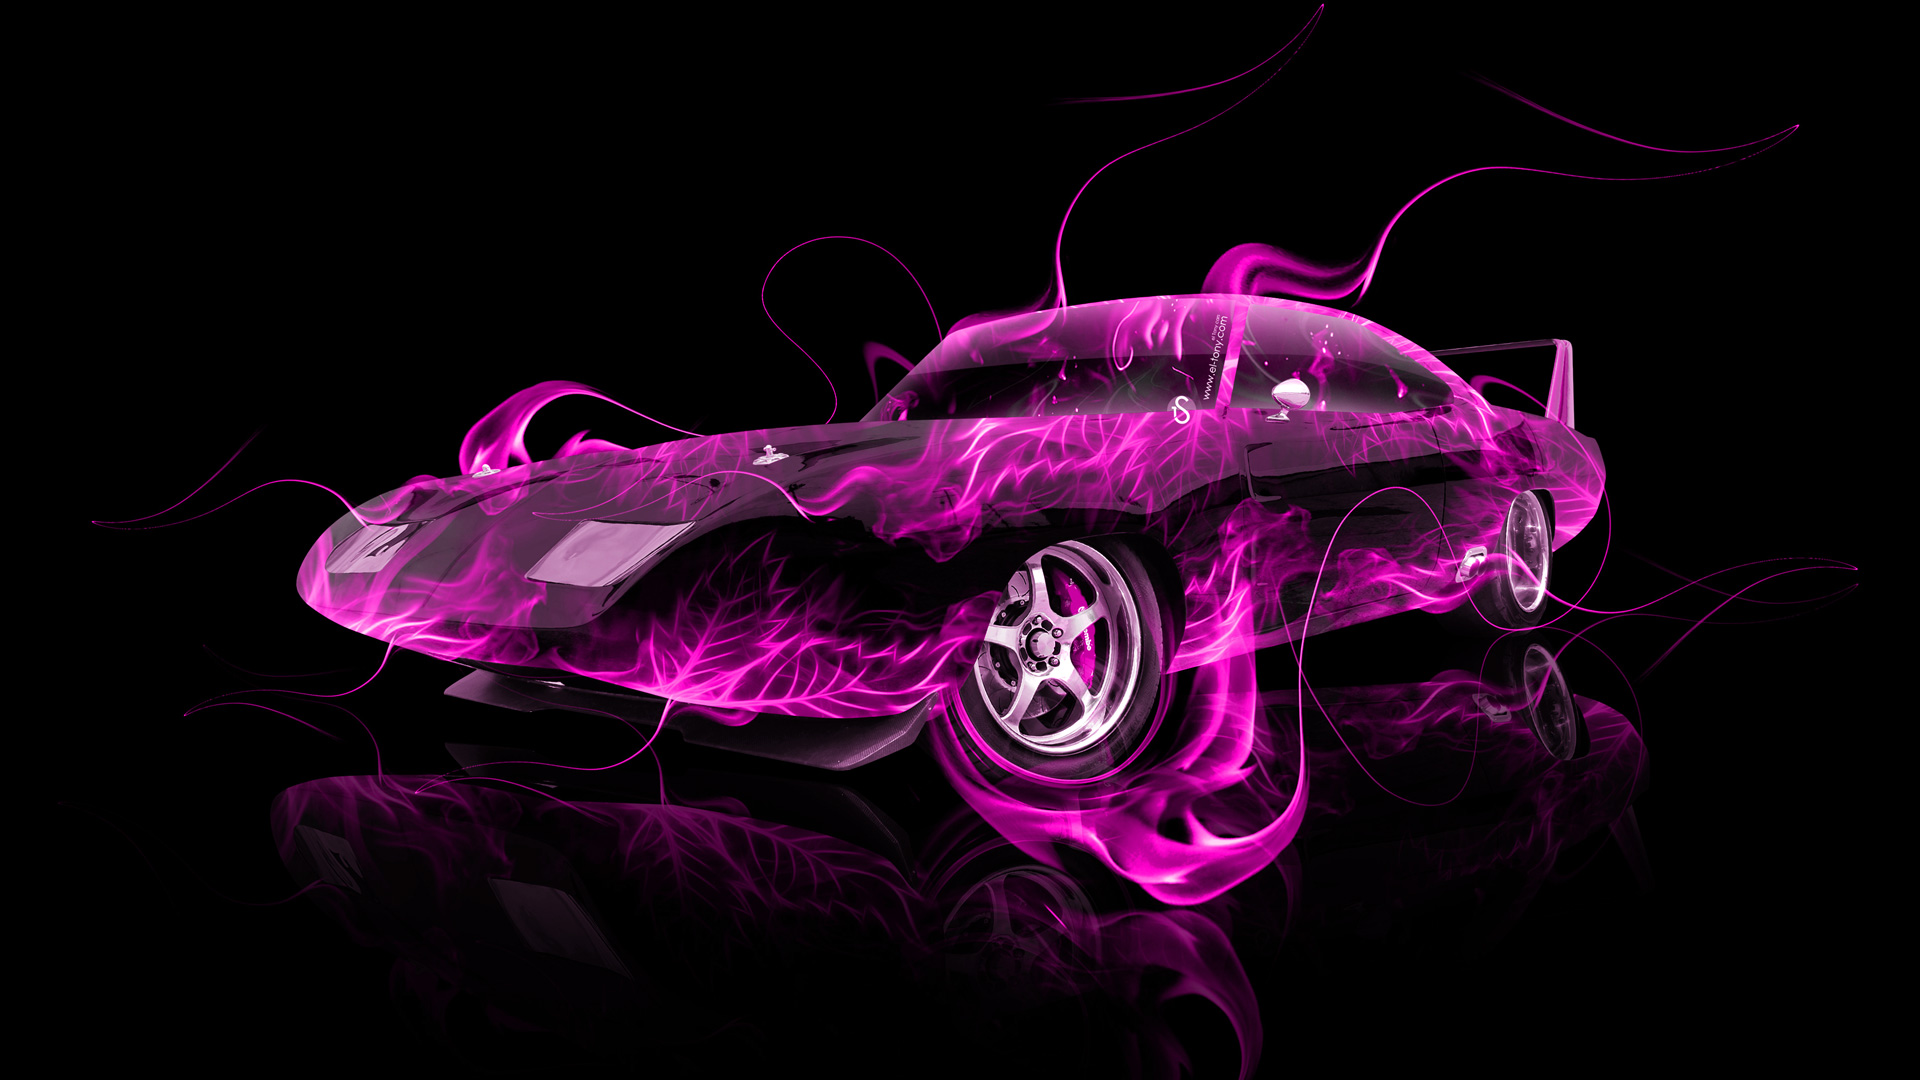 Hd Classic Muscle Car Wallpapers Dodge Charger Daytona Muscle Fire Abstract Car 2014 El Tony